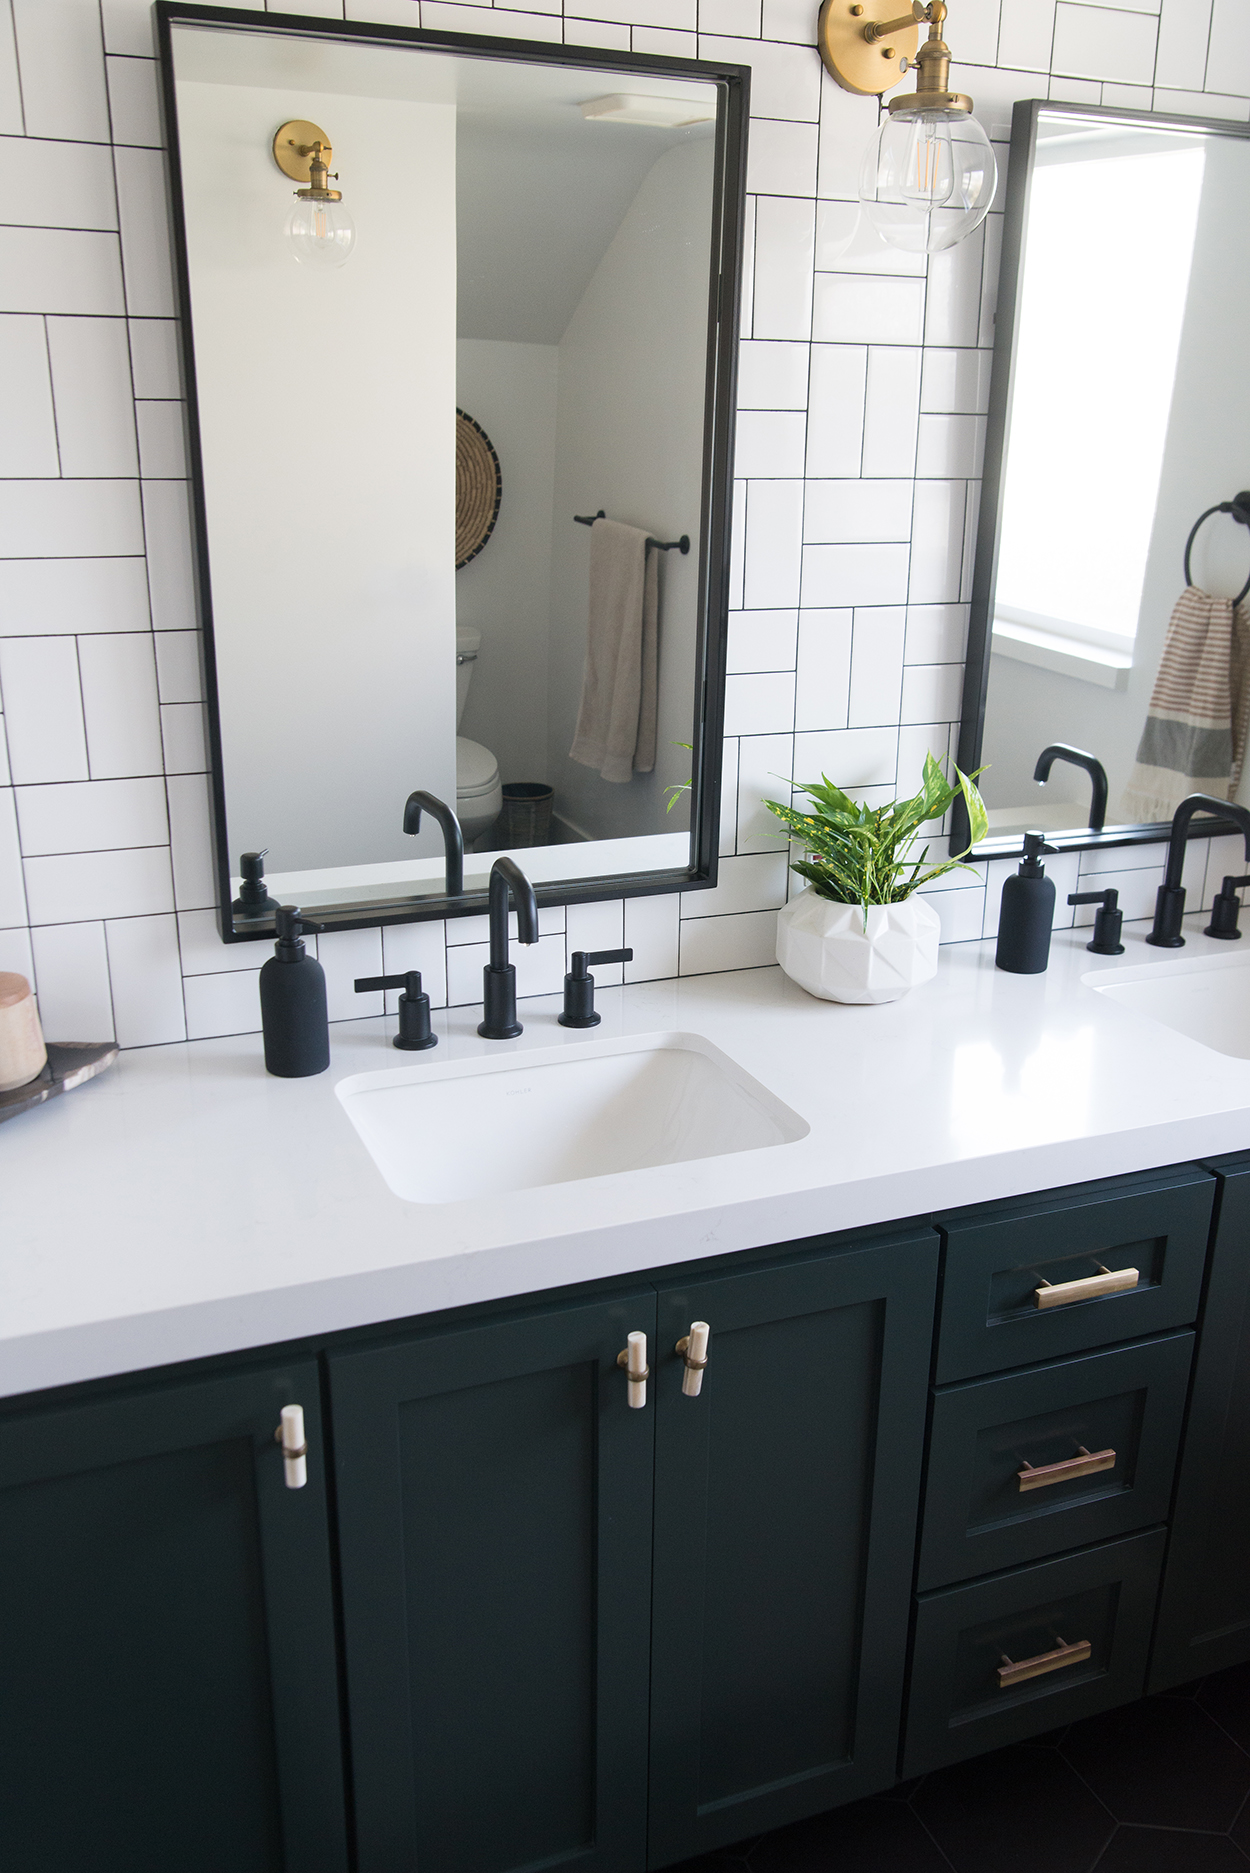 white and black tiled bathroom wall with a black mirrors and a black vanity with a white counter